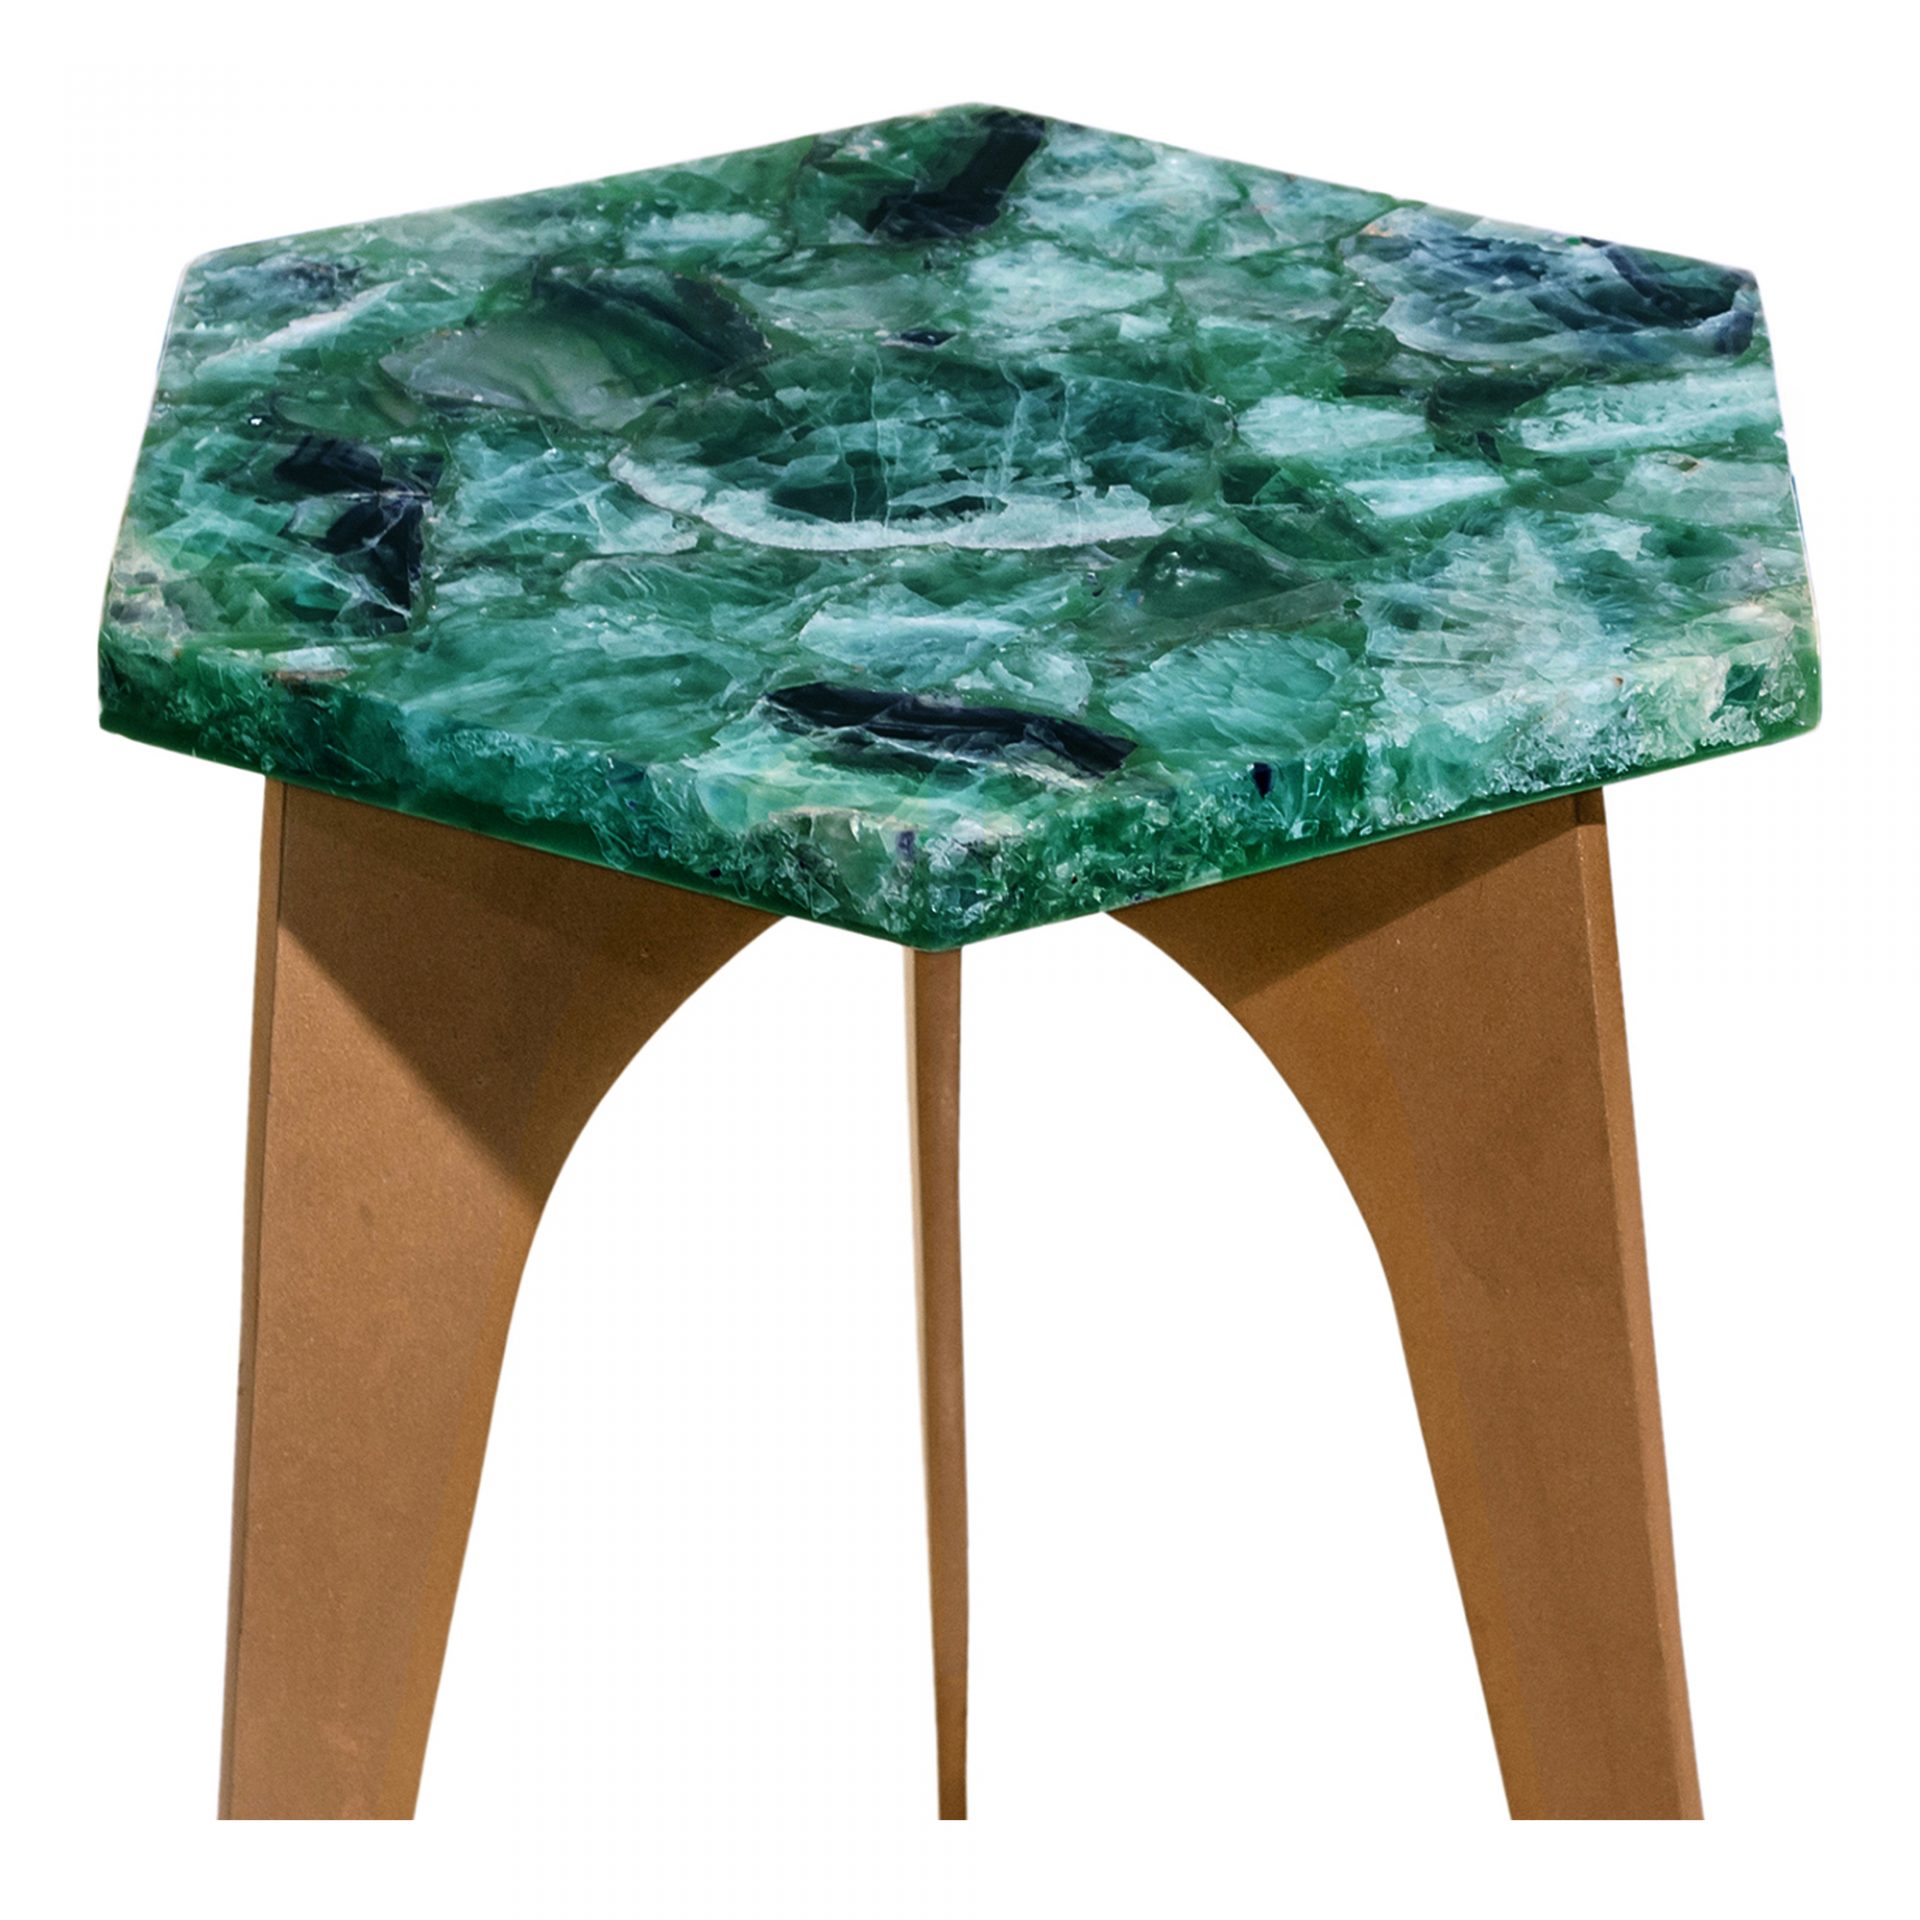 green fluorite accent table products moe whole emerald tables best patio furniture king iron unique home modern bedroom weber grill white sliding barn door west elm rocking chair